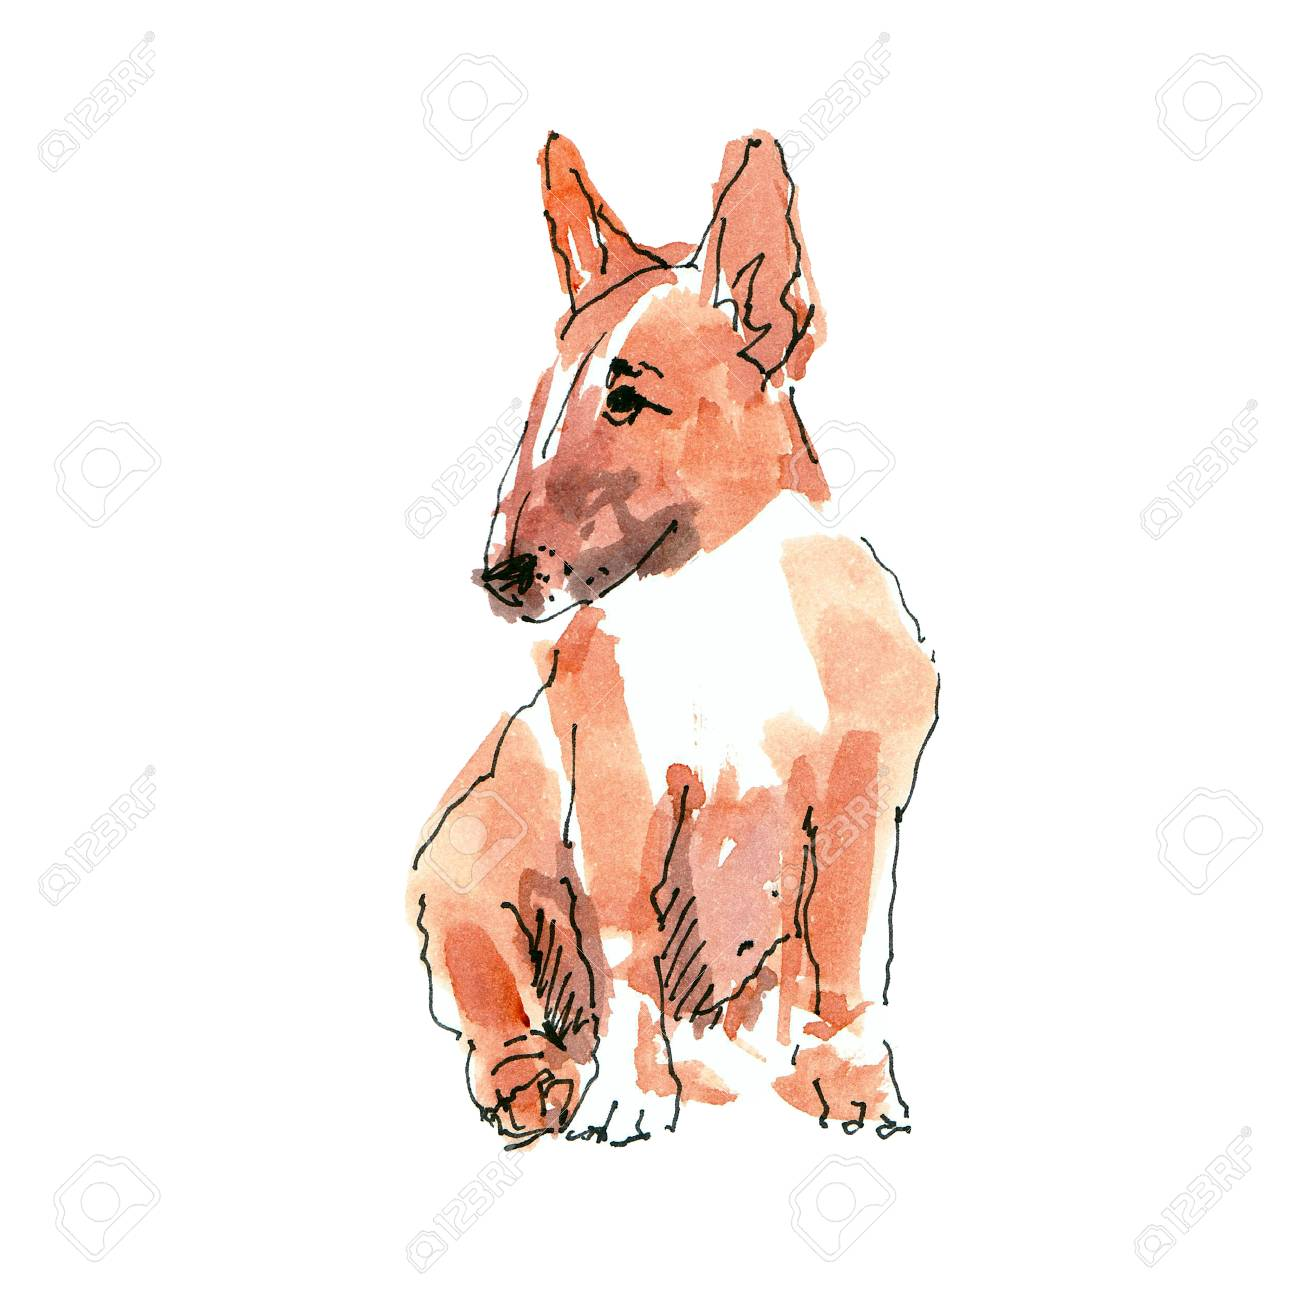 Watercolor illustration of pibull dog sketch isolated on white - 109991146